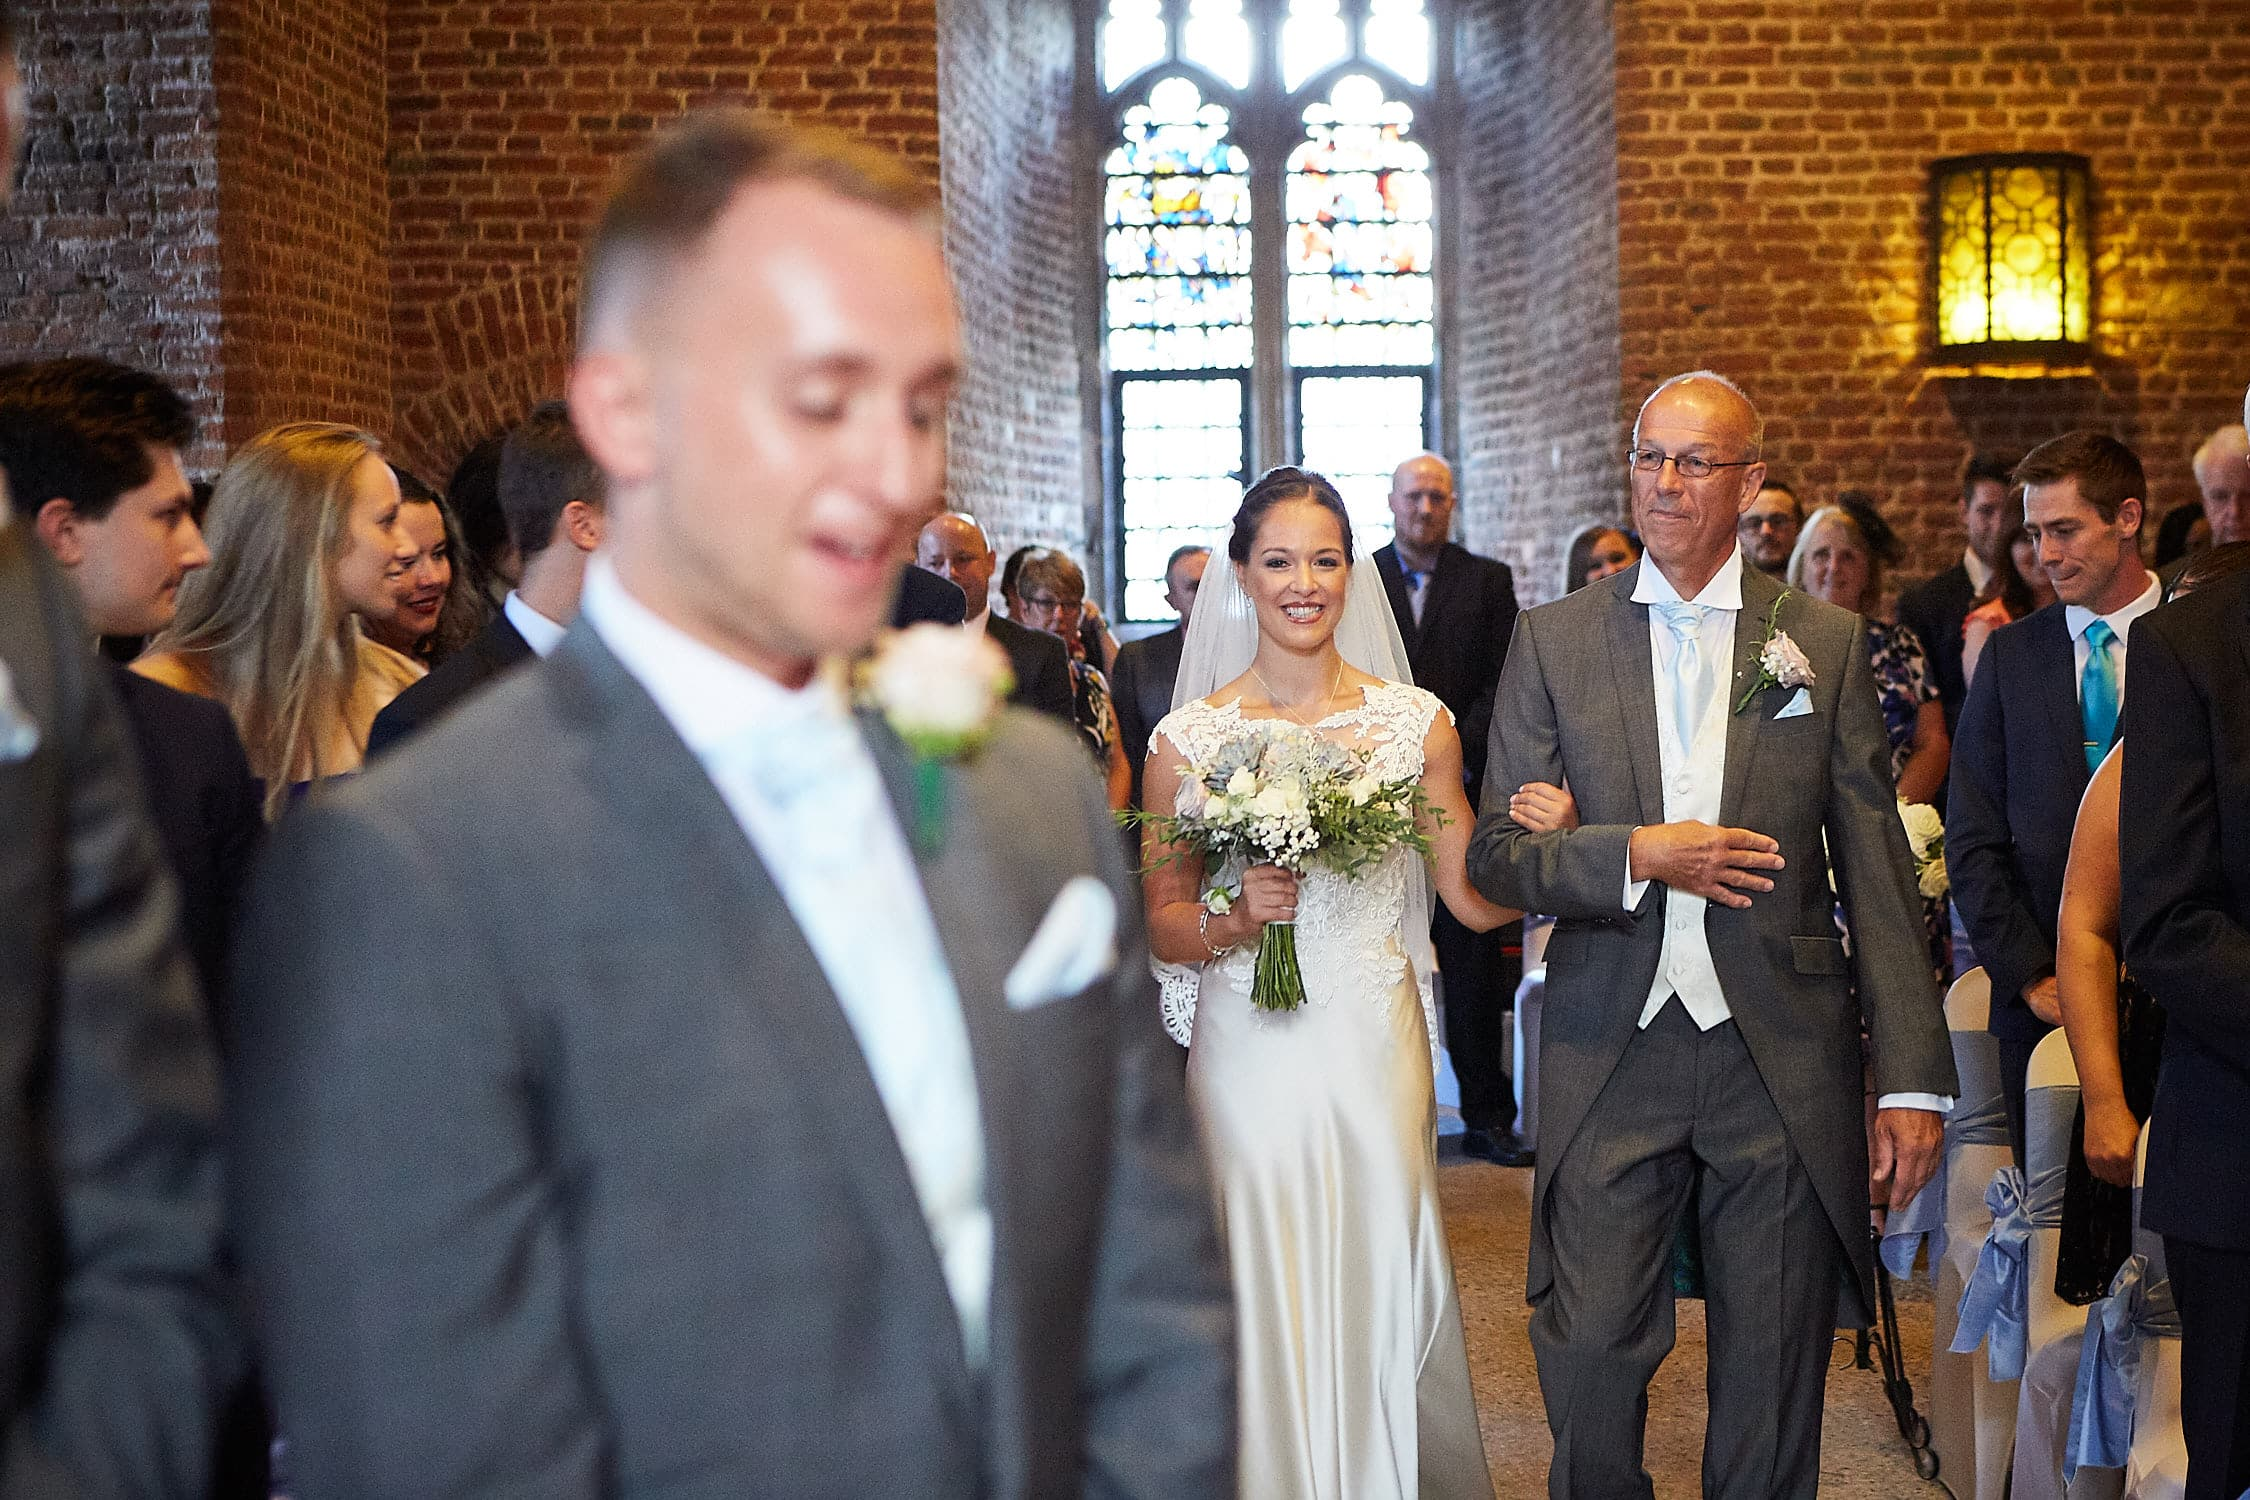 A father walks his daughter down the aisle at Tattershall Castle